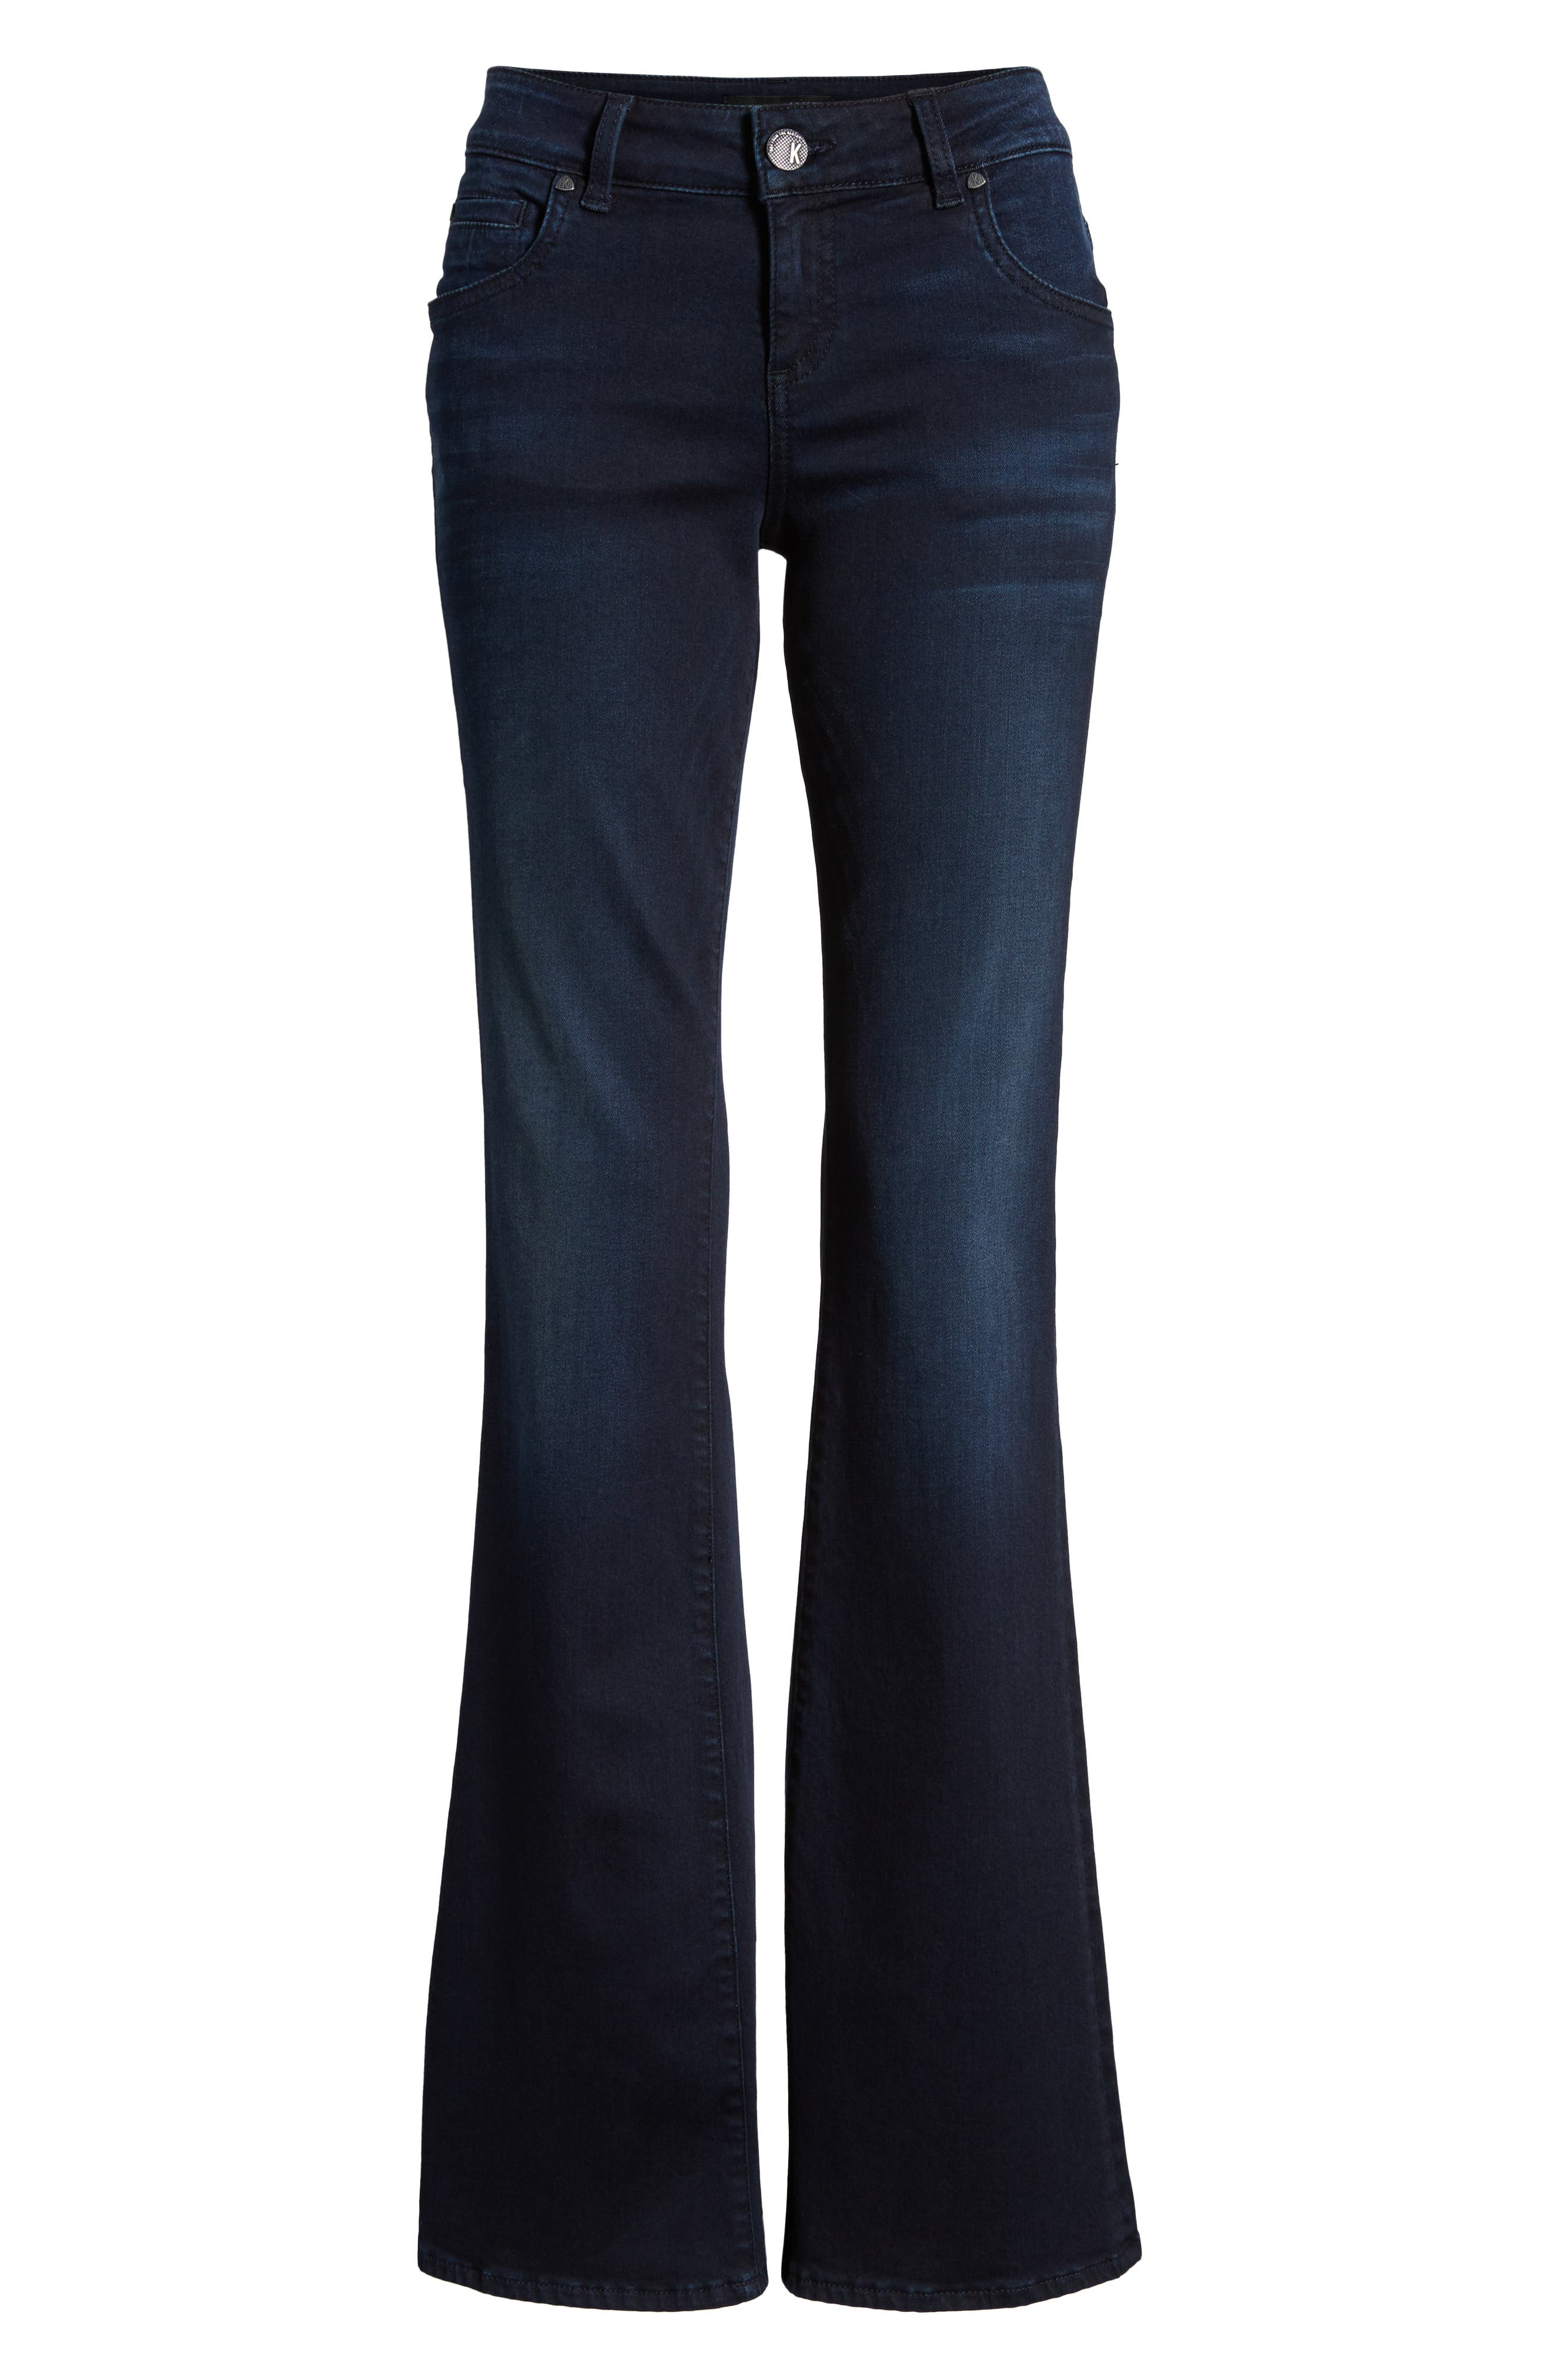 KUT FROM THE KLOTH, Natalie Stretch Bootleg Jeans, Alternate thumbnail 6, color, LIBERATING